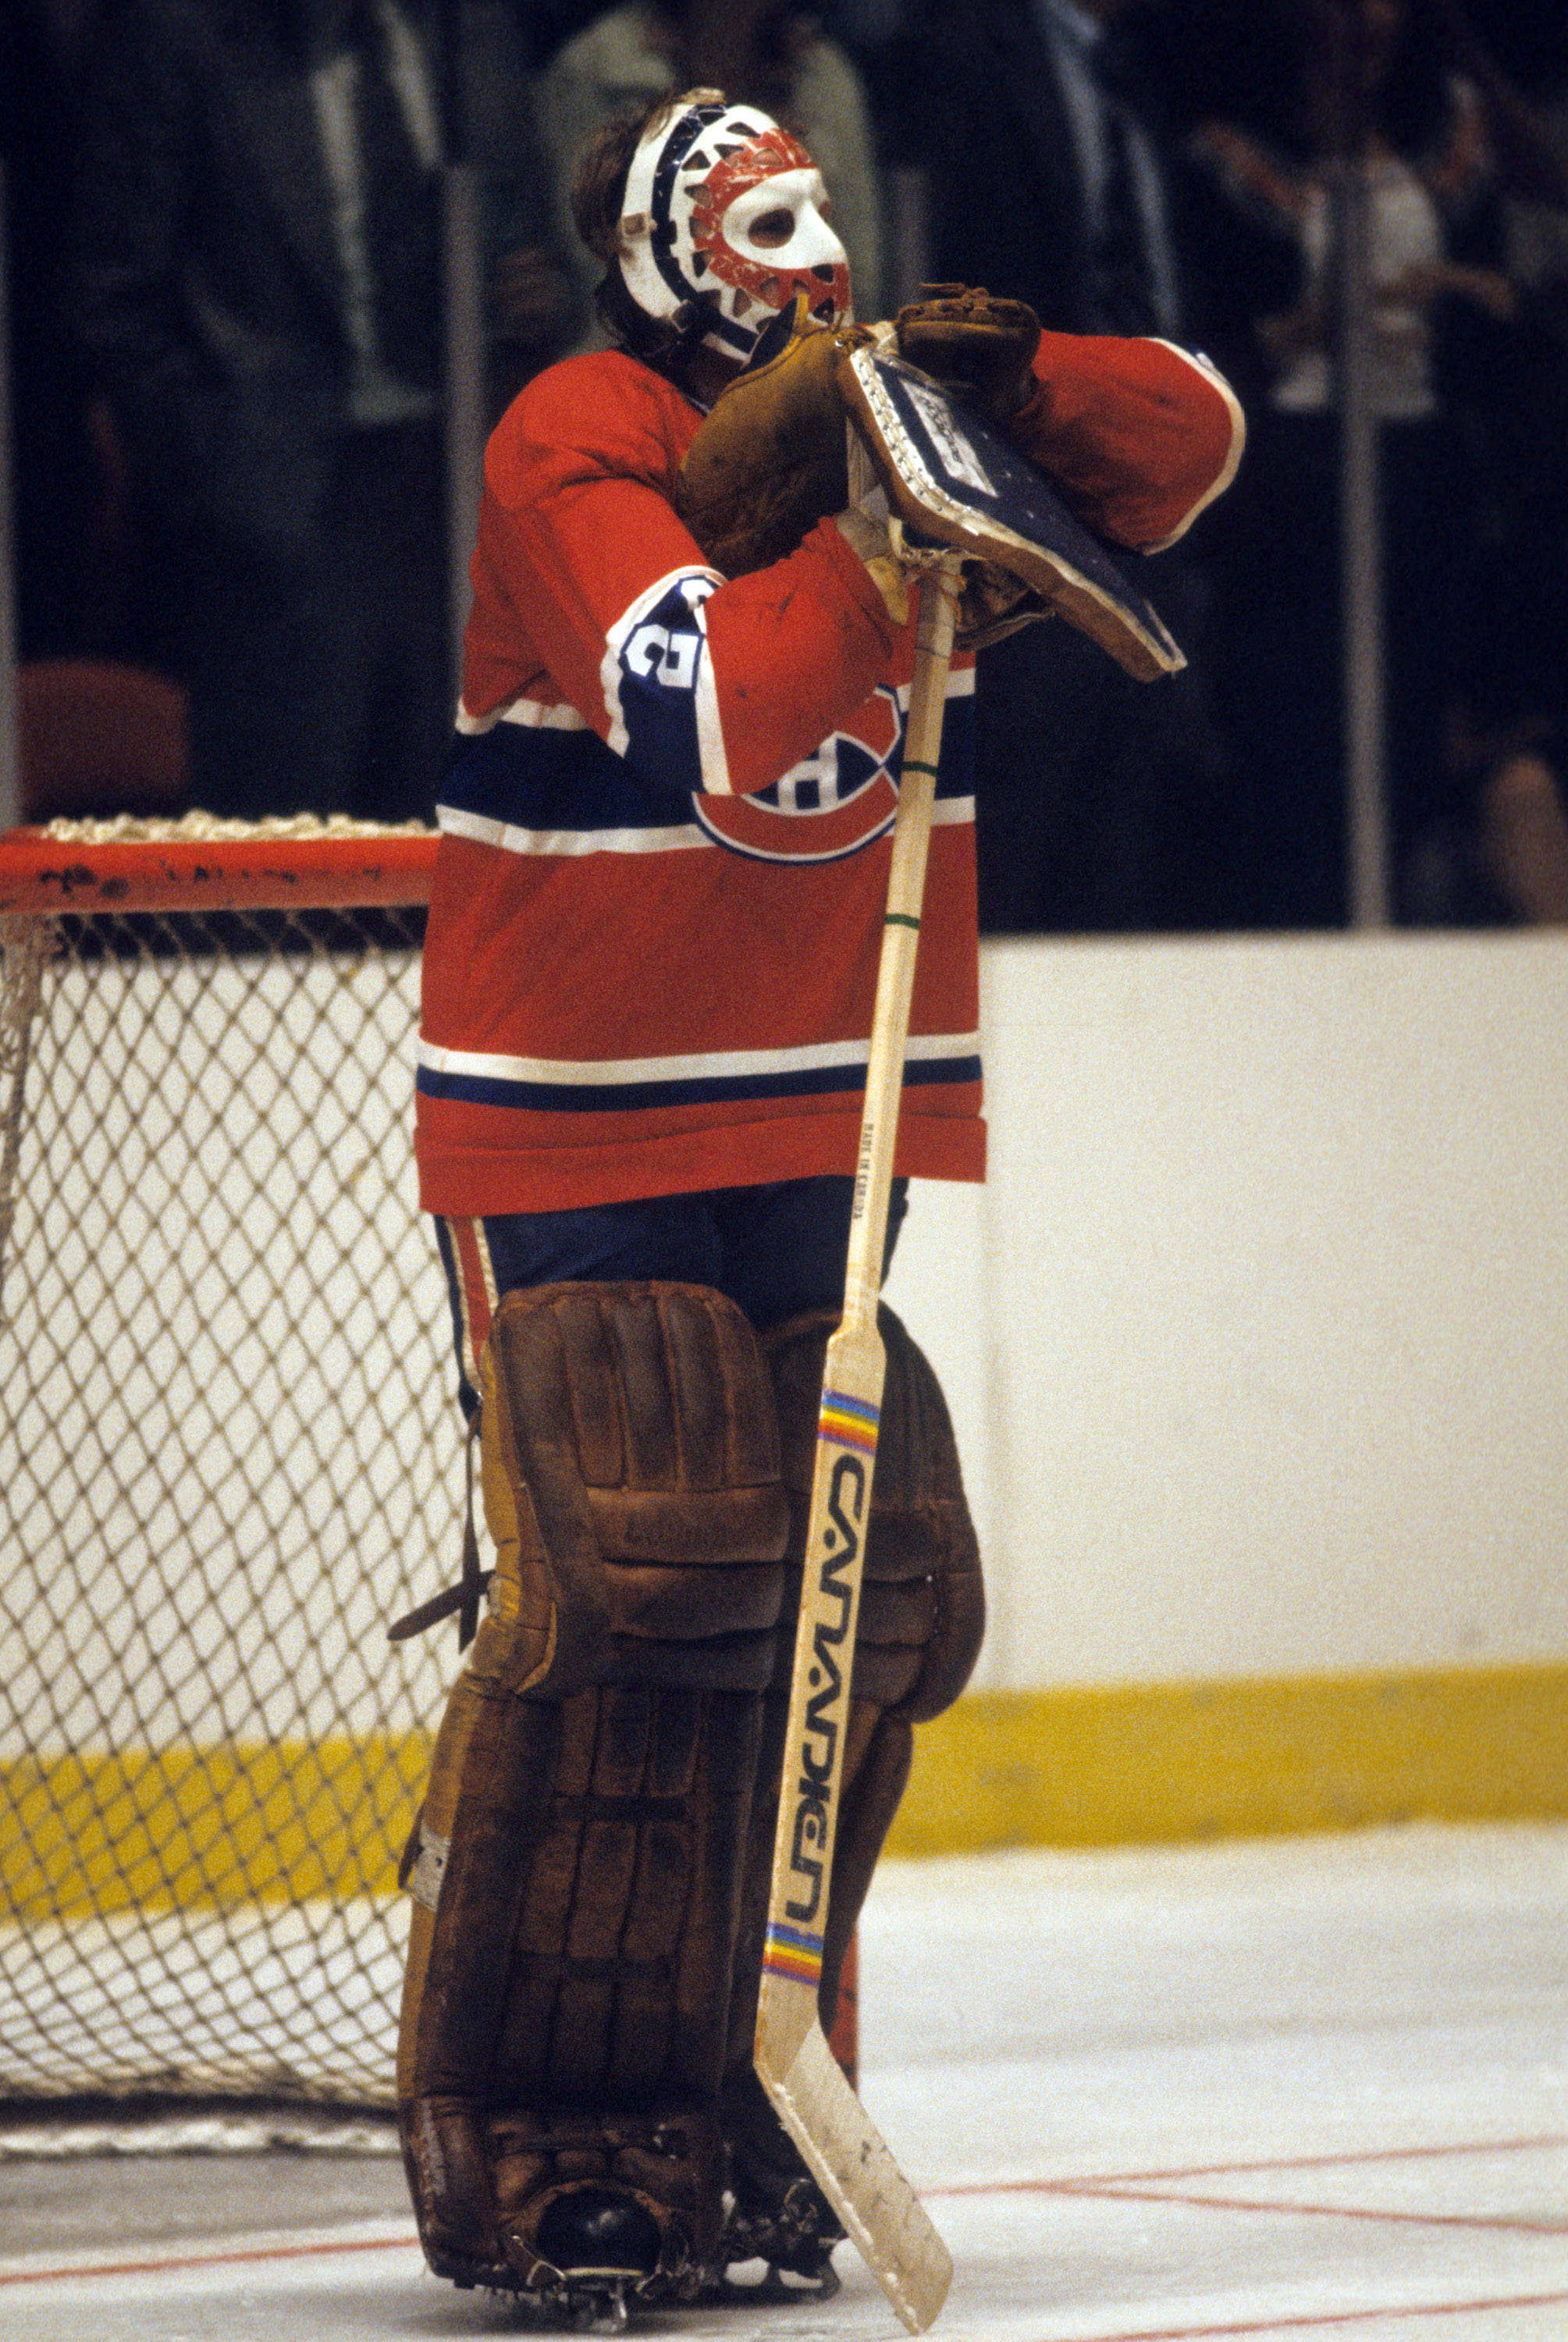 CIRCA 1970: Goaltender Ken Dryden #29 of the Montreal Canadiens stands on the ice during a game in Circa 1970 (Photo by Bruce Bennett/Getty Images)